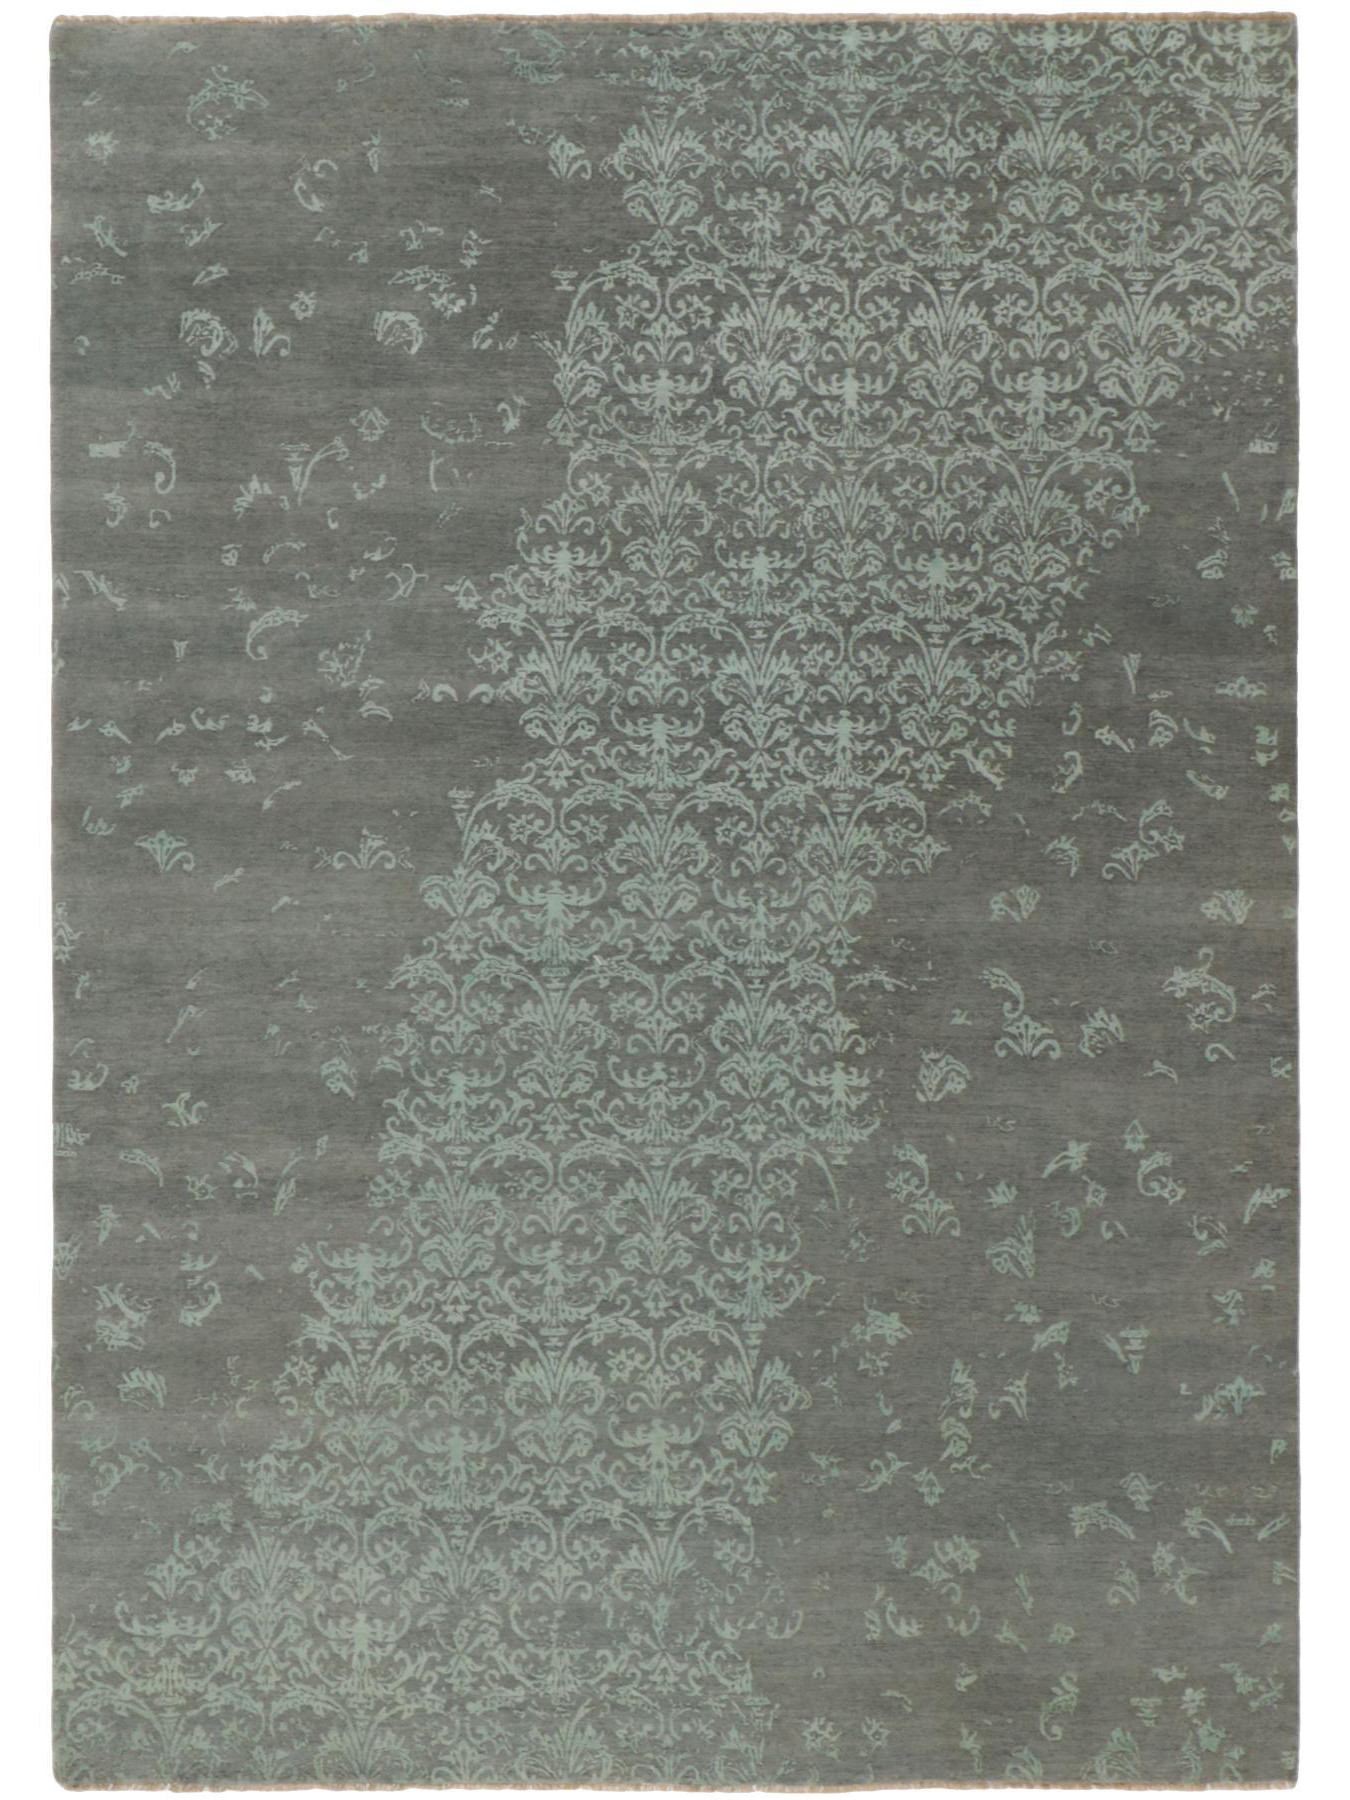 Luxury tapijten - Damask-AL-2E F-33/HB-23